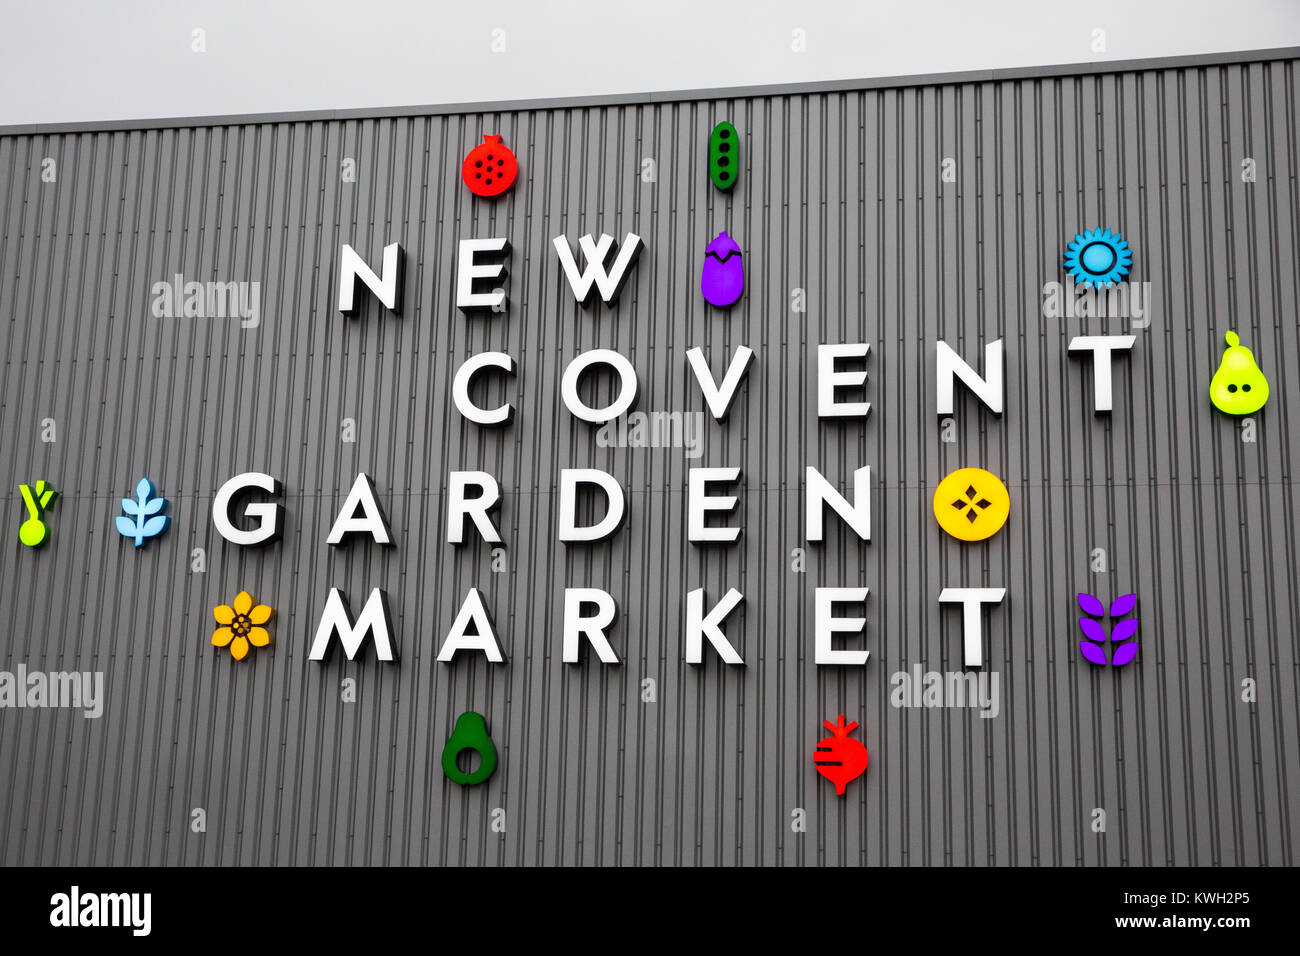 London, UK. 20th December, 2017. Signage for New Covent Garden Market at Nine Elms. - Stock Image